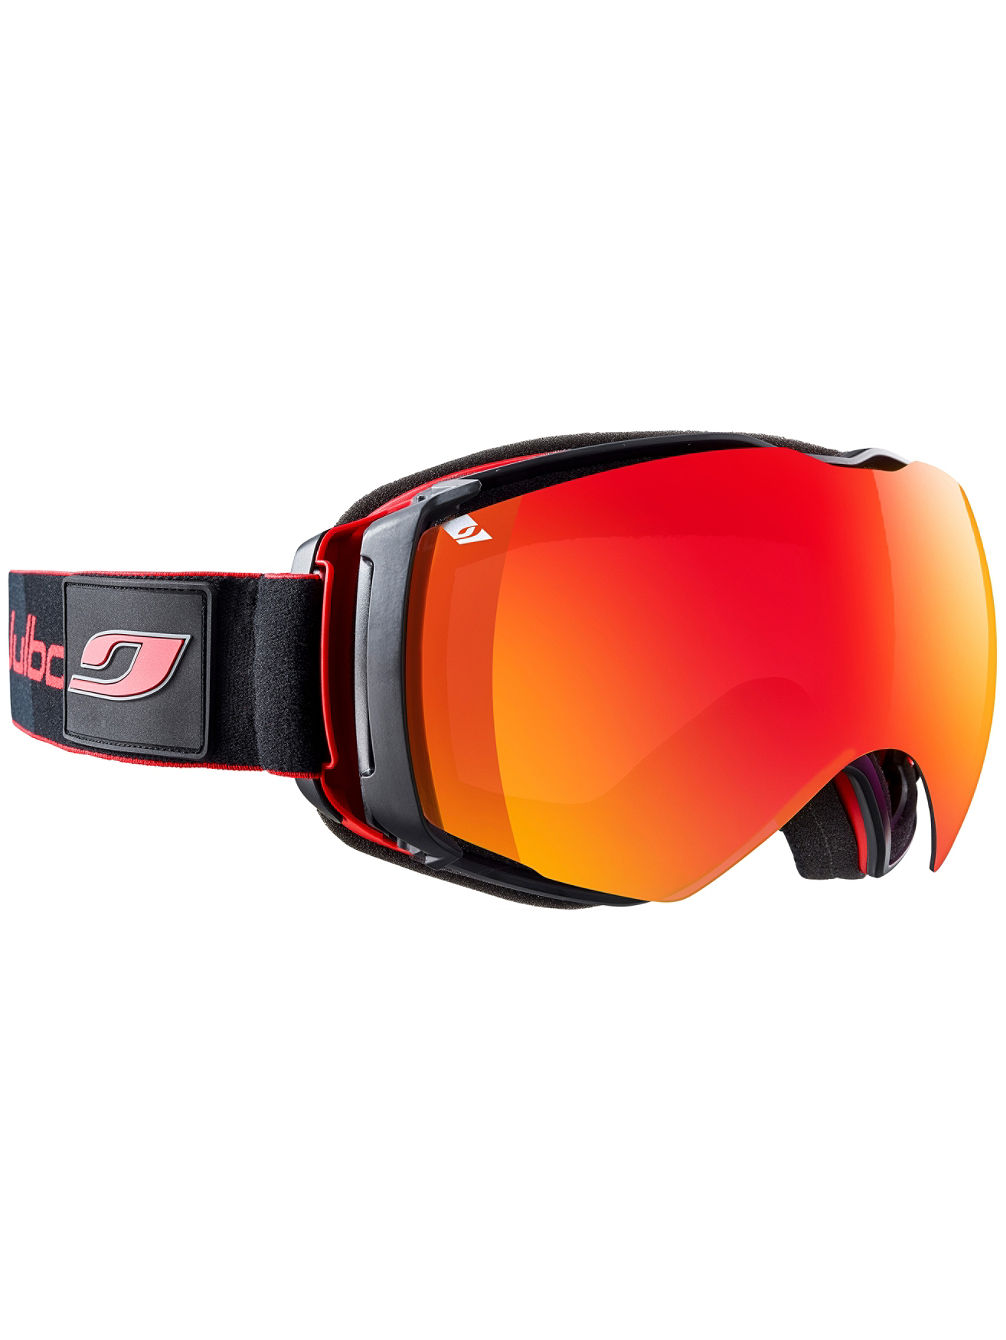 Airflux Black/Red Goggle